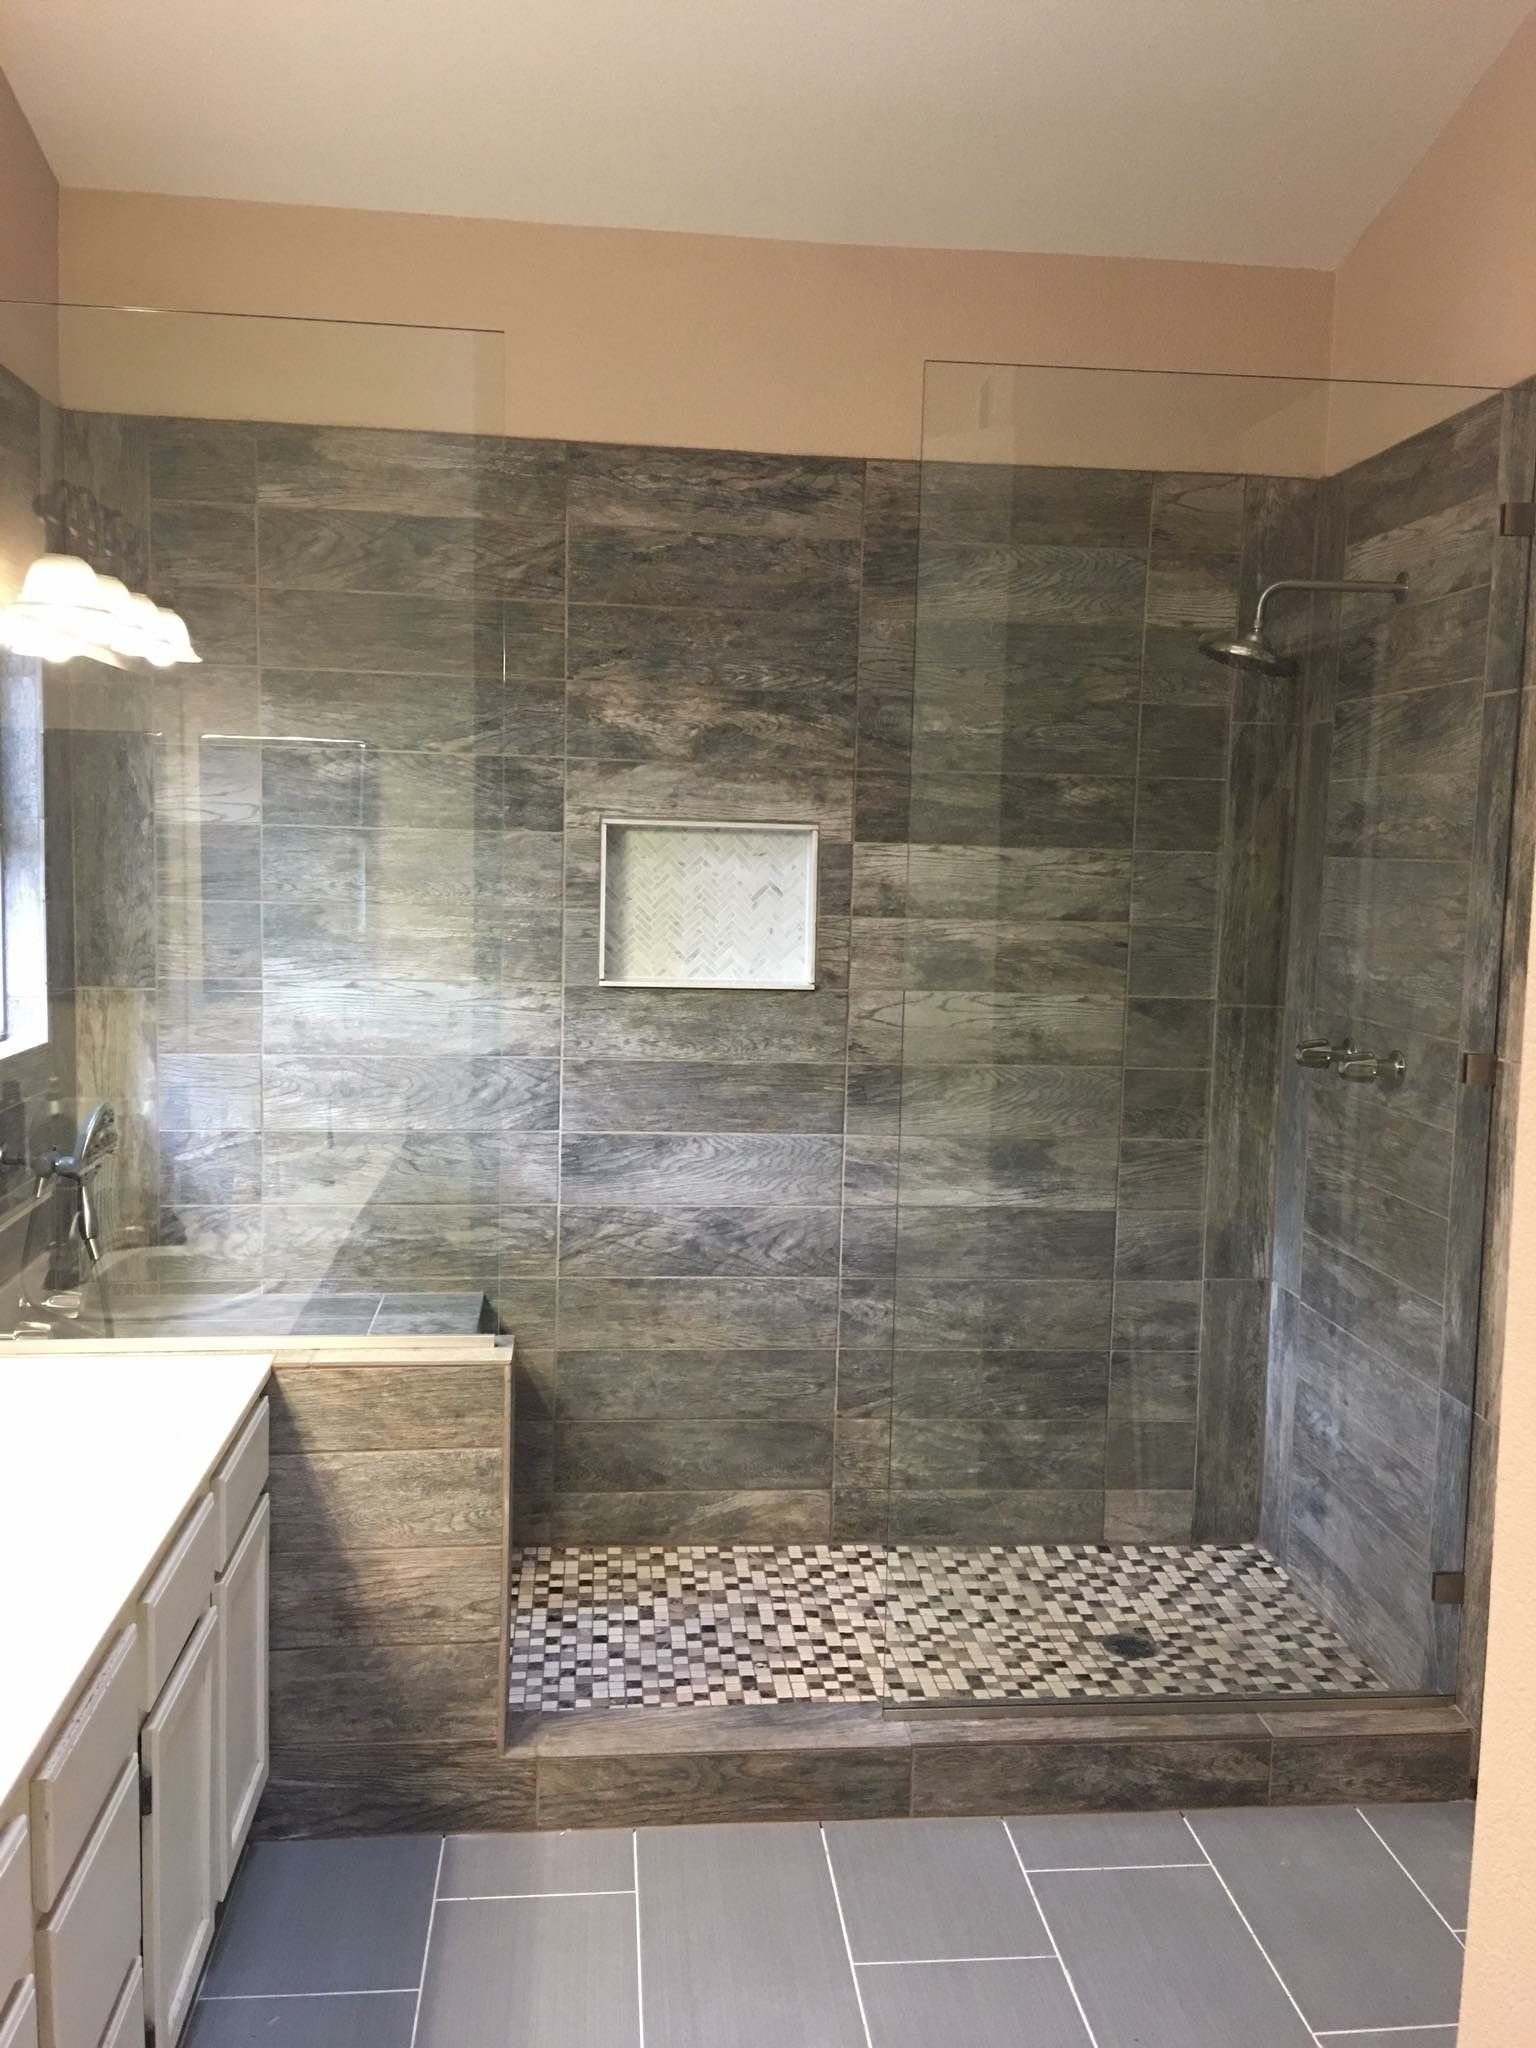 Large Tile Shower With Double Shower Heads And Bench Seat Large Shower Tile Shower Tile Double Shower Heads